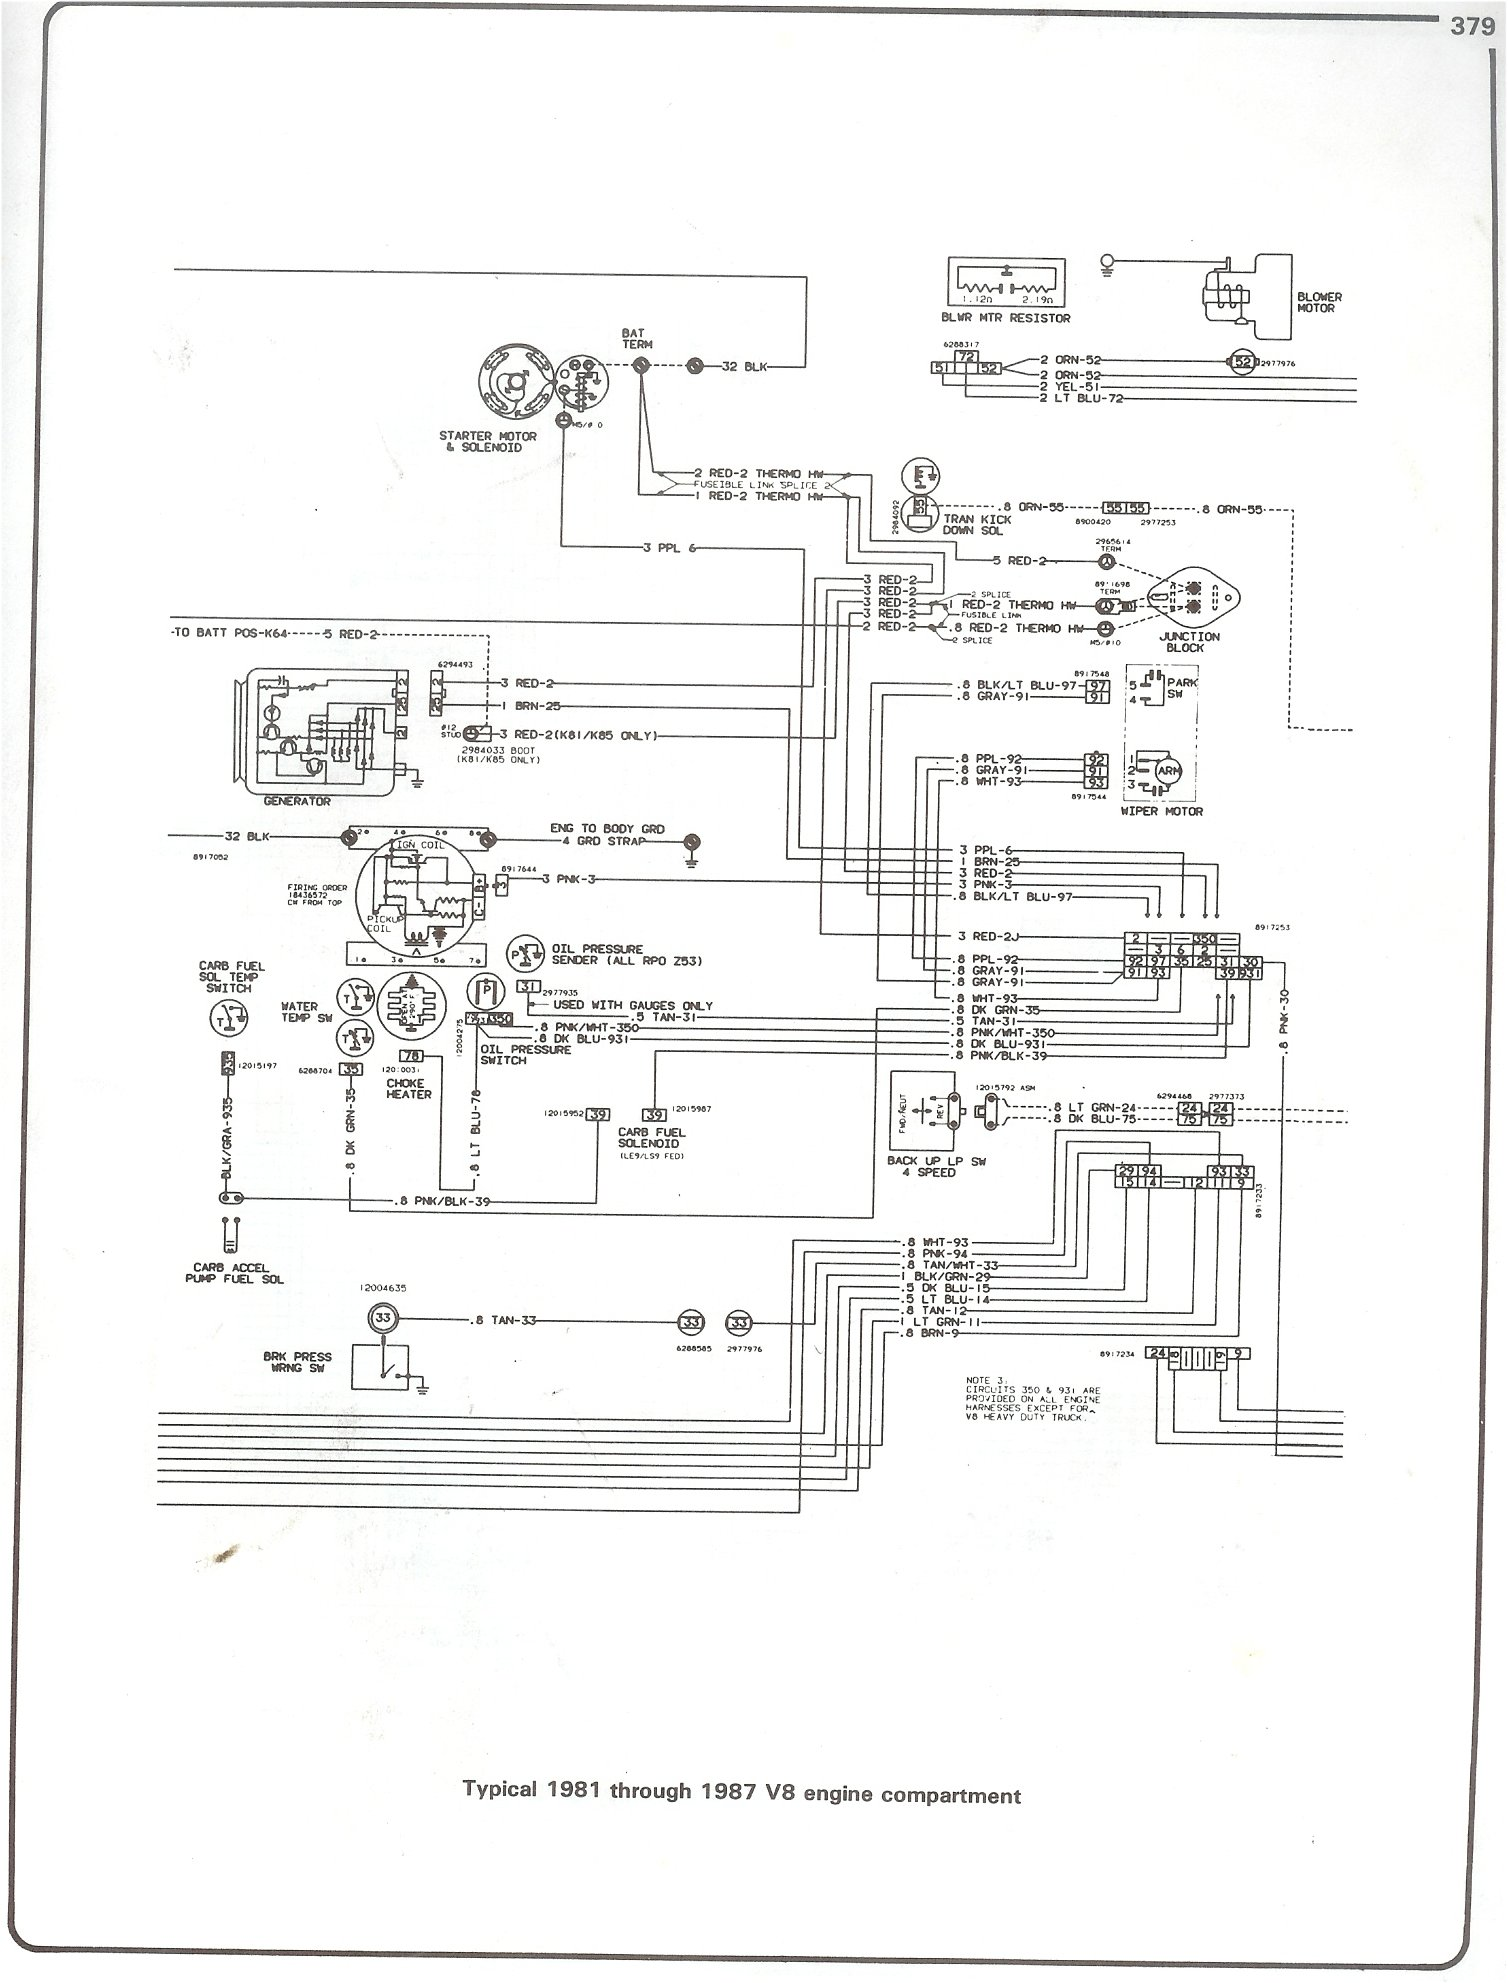 81 87_V8_engine complete 73 87 wiring diagrams 1986 chevy truck wiring diagram at readyjetset.co